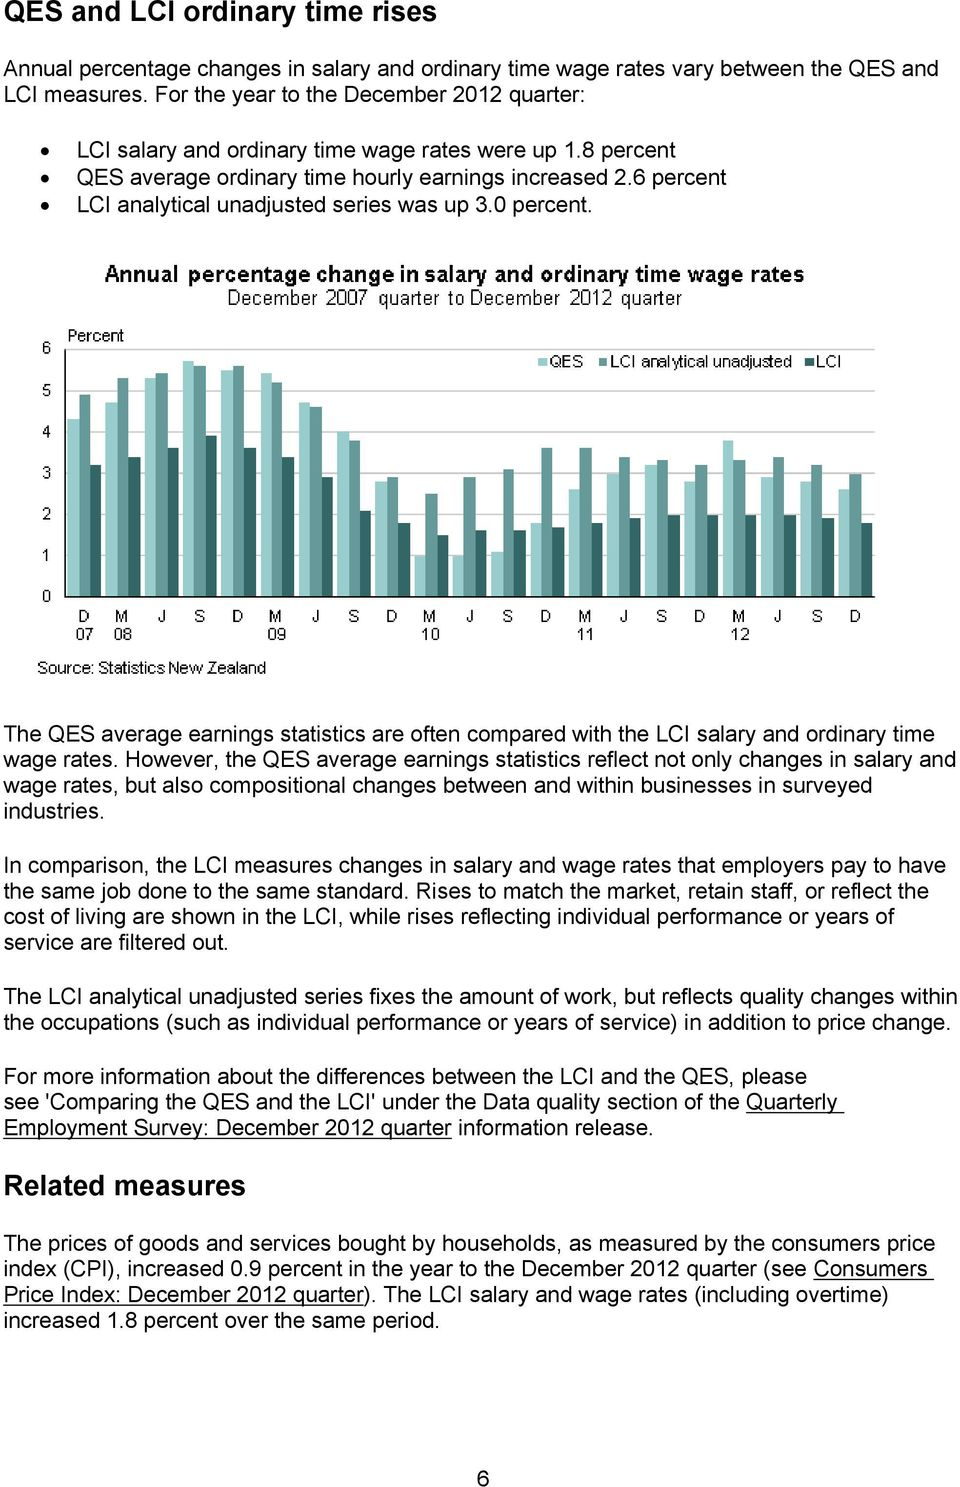 6 percent LCI analytical unadjusted series was up 3.0 percent. The QES average earnings statistics are often compared with the LCI salary and ordinary time wage rates.